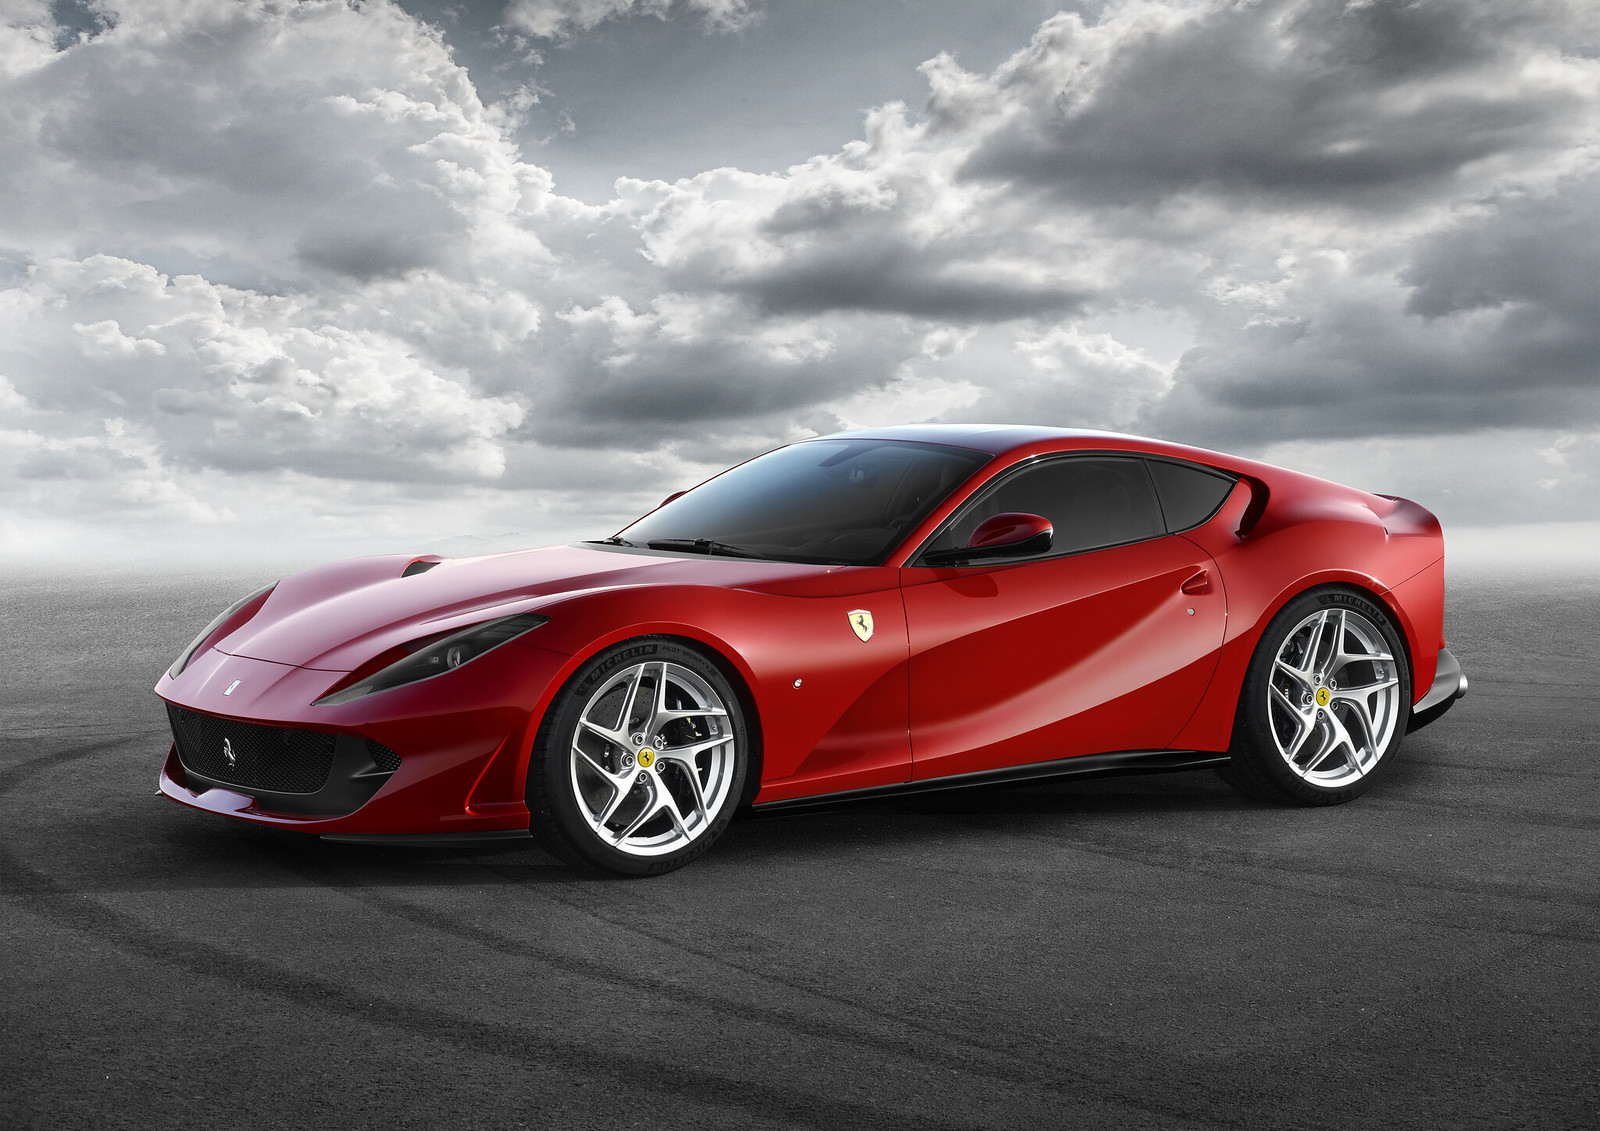 This is the Ferrari 812 Superfast